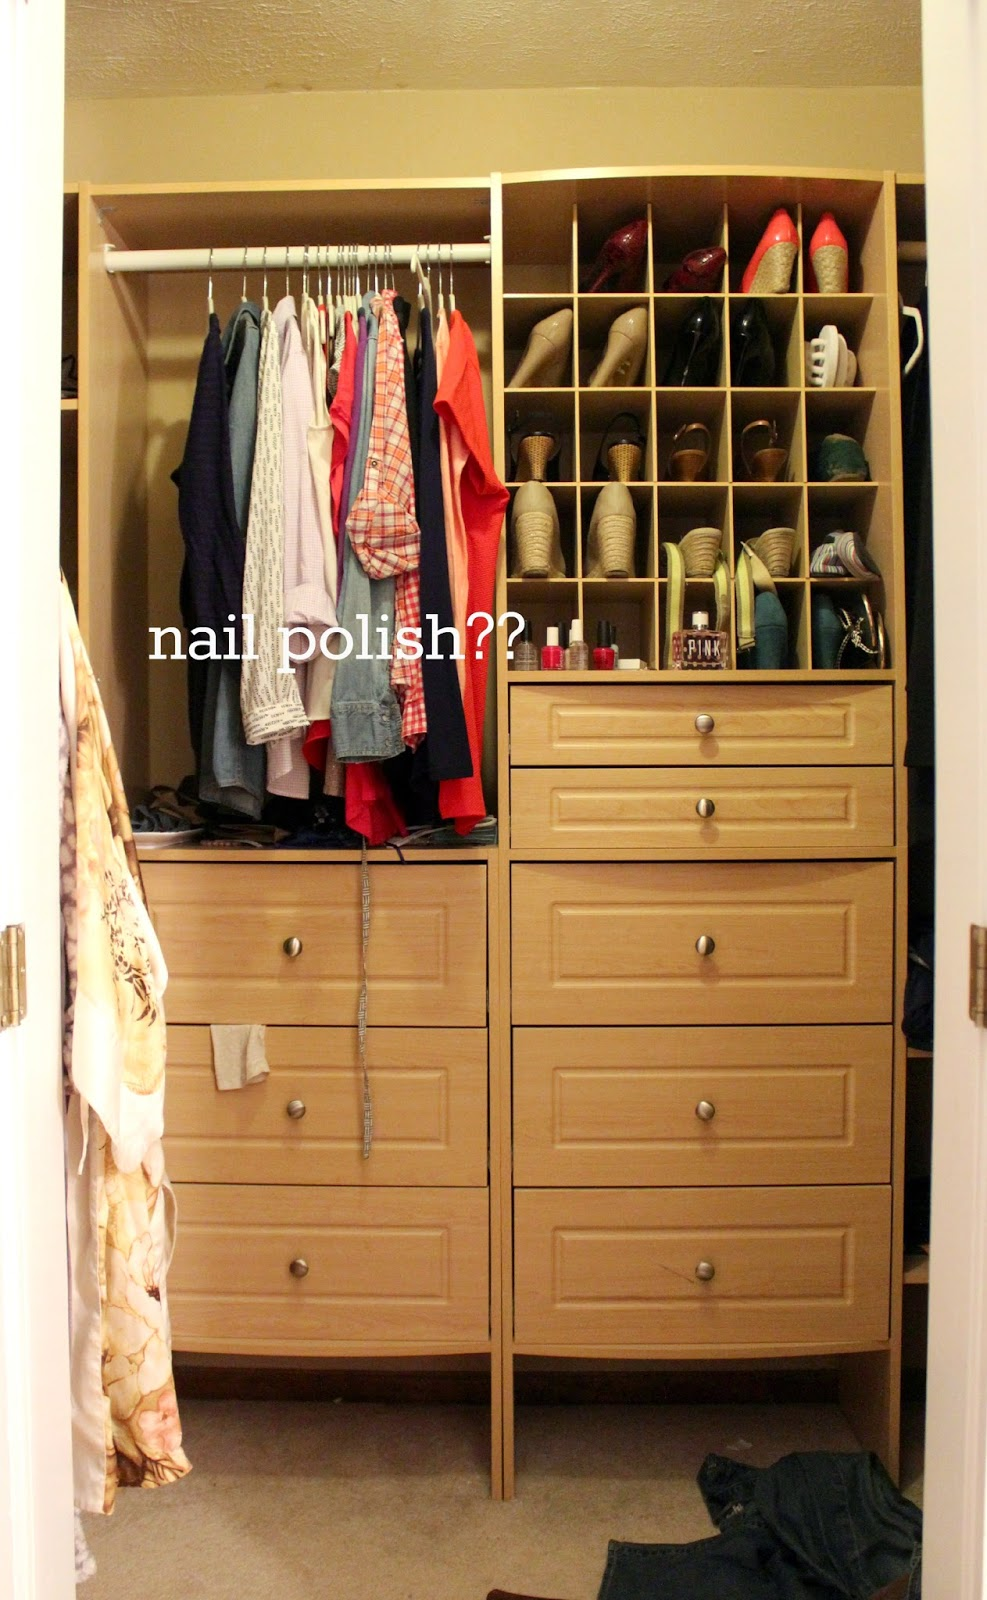 I Decided To Start With Our Master Bedroom Closet Because It Doesnu0027t  Involve A Ton Of Manual Labor Or Reworking. It Really Just Needs A Good  Clean Out And ...